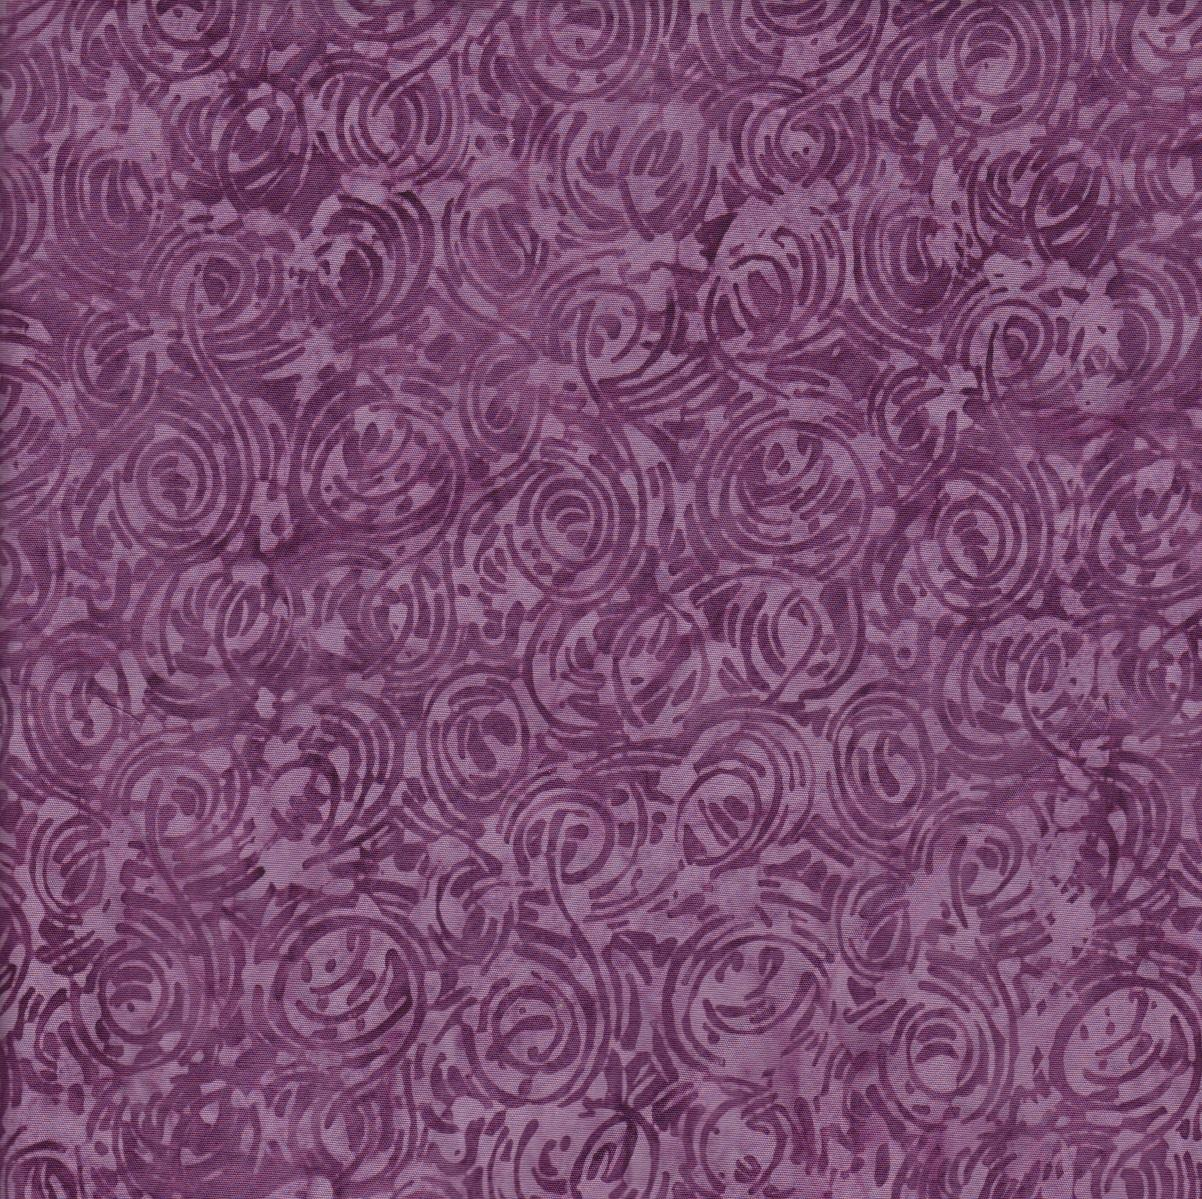 Island Batik - Yarn - Purple